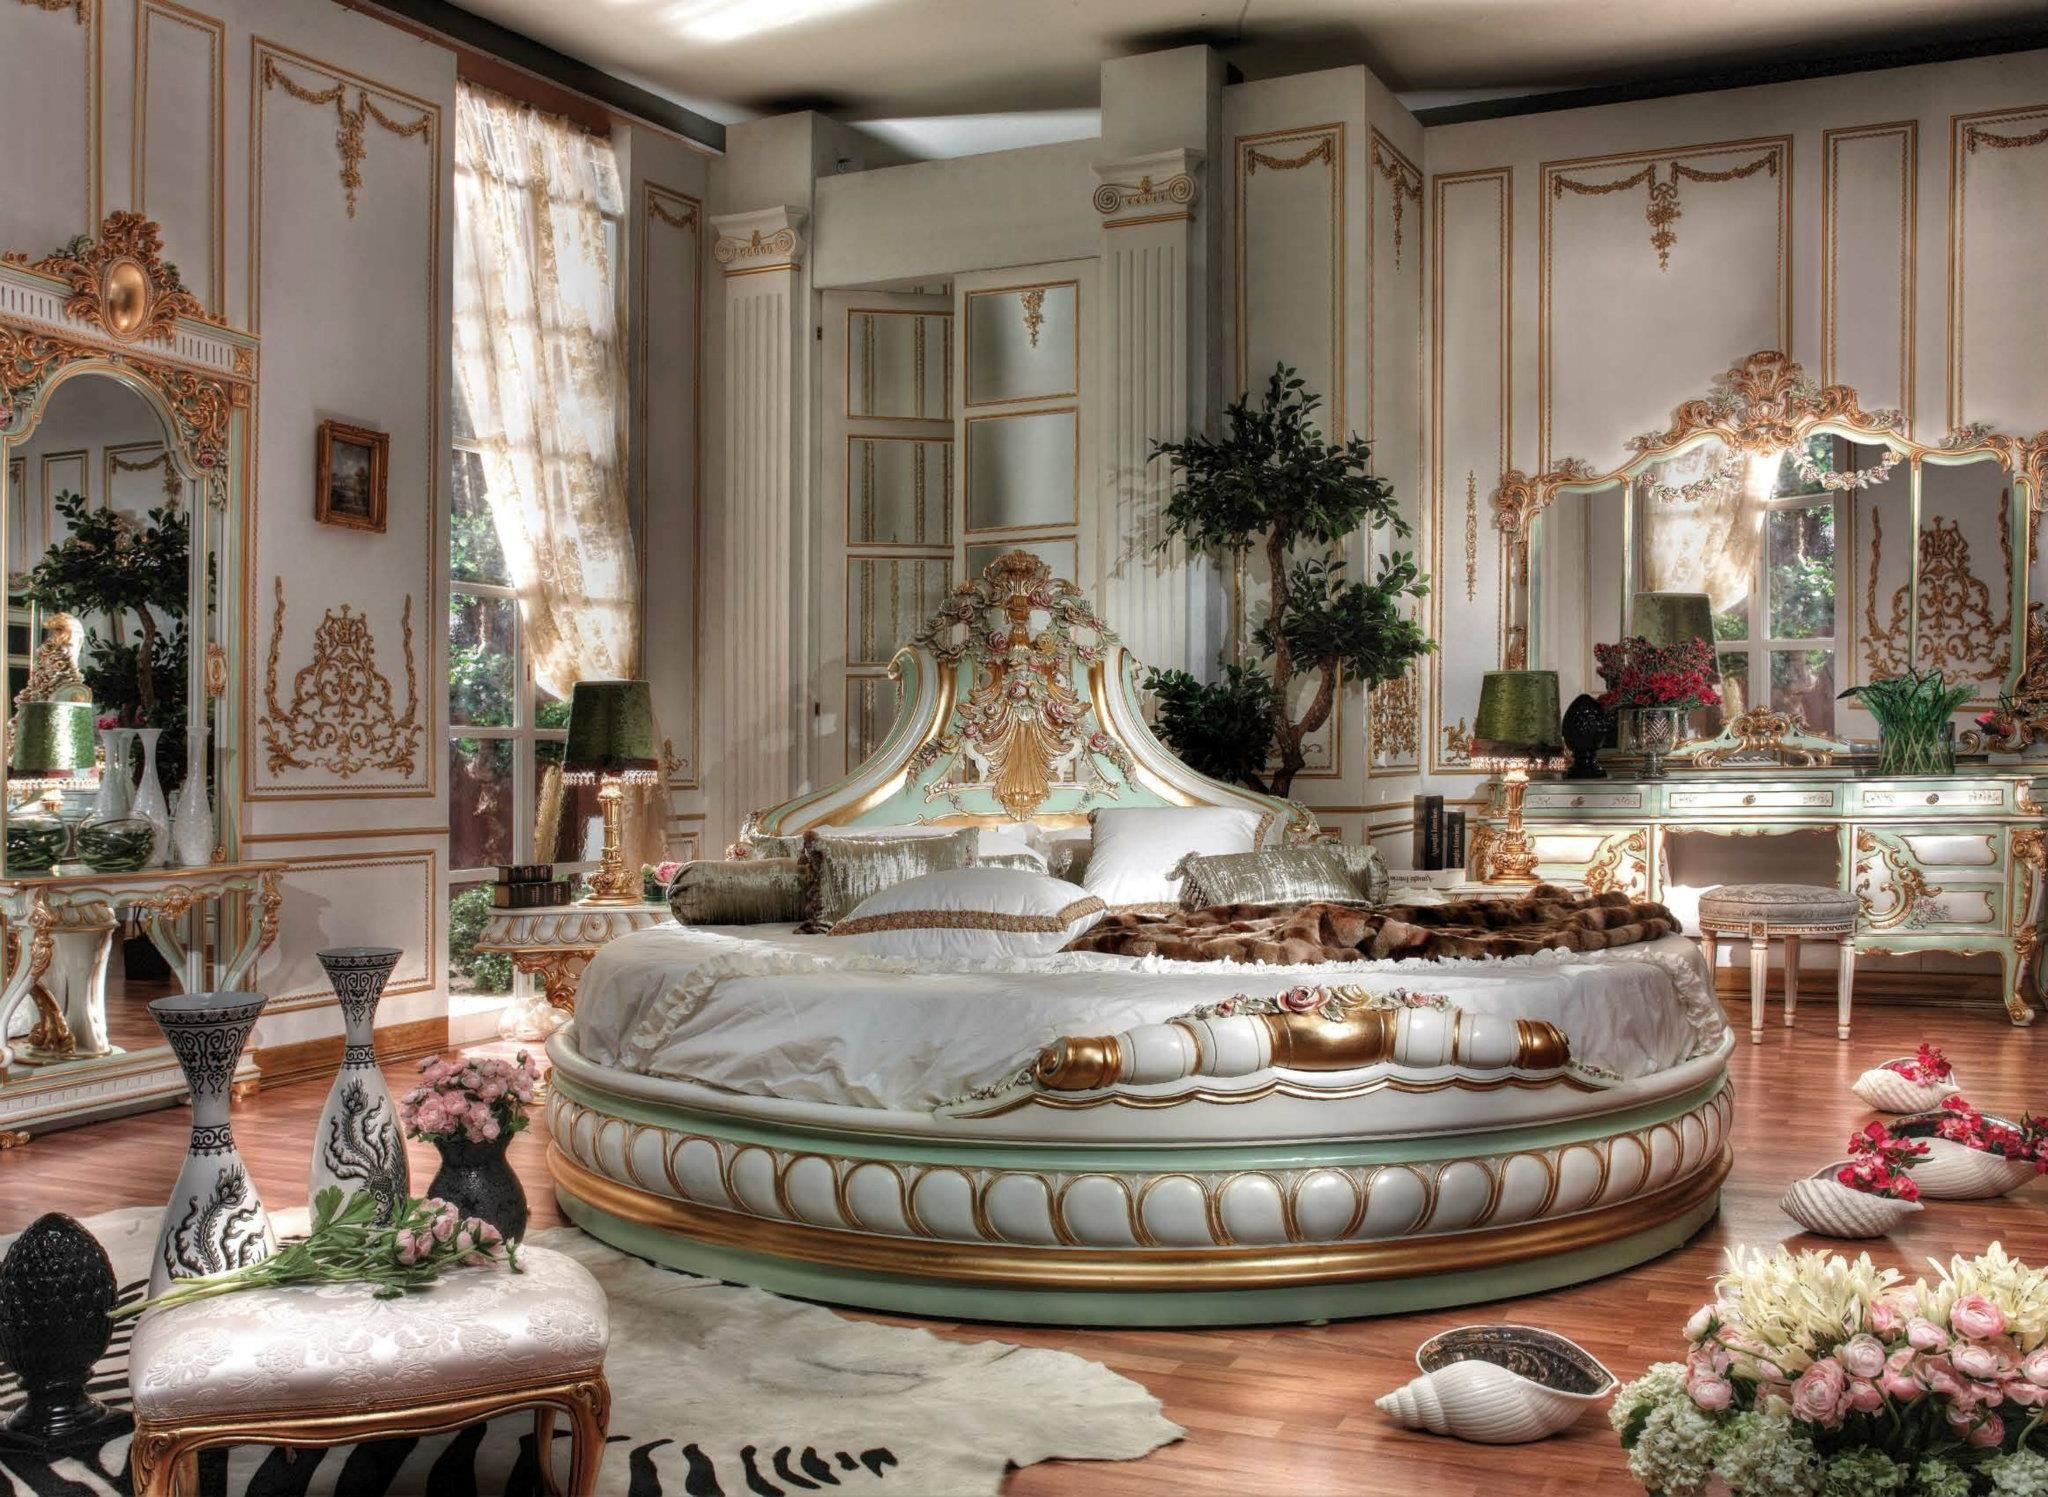 Italian Baroque Interior Design Italian Bed Room In Round Shape Italian Classic Bed Room In Round Round Beds Italian Bedroom Furniture Italian Bedroom